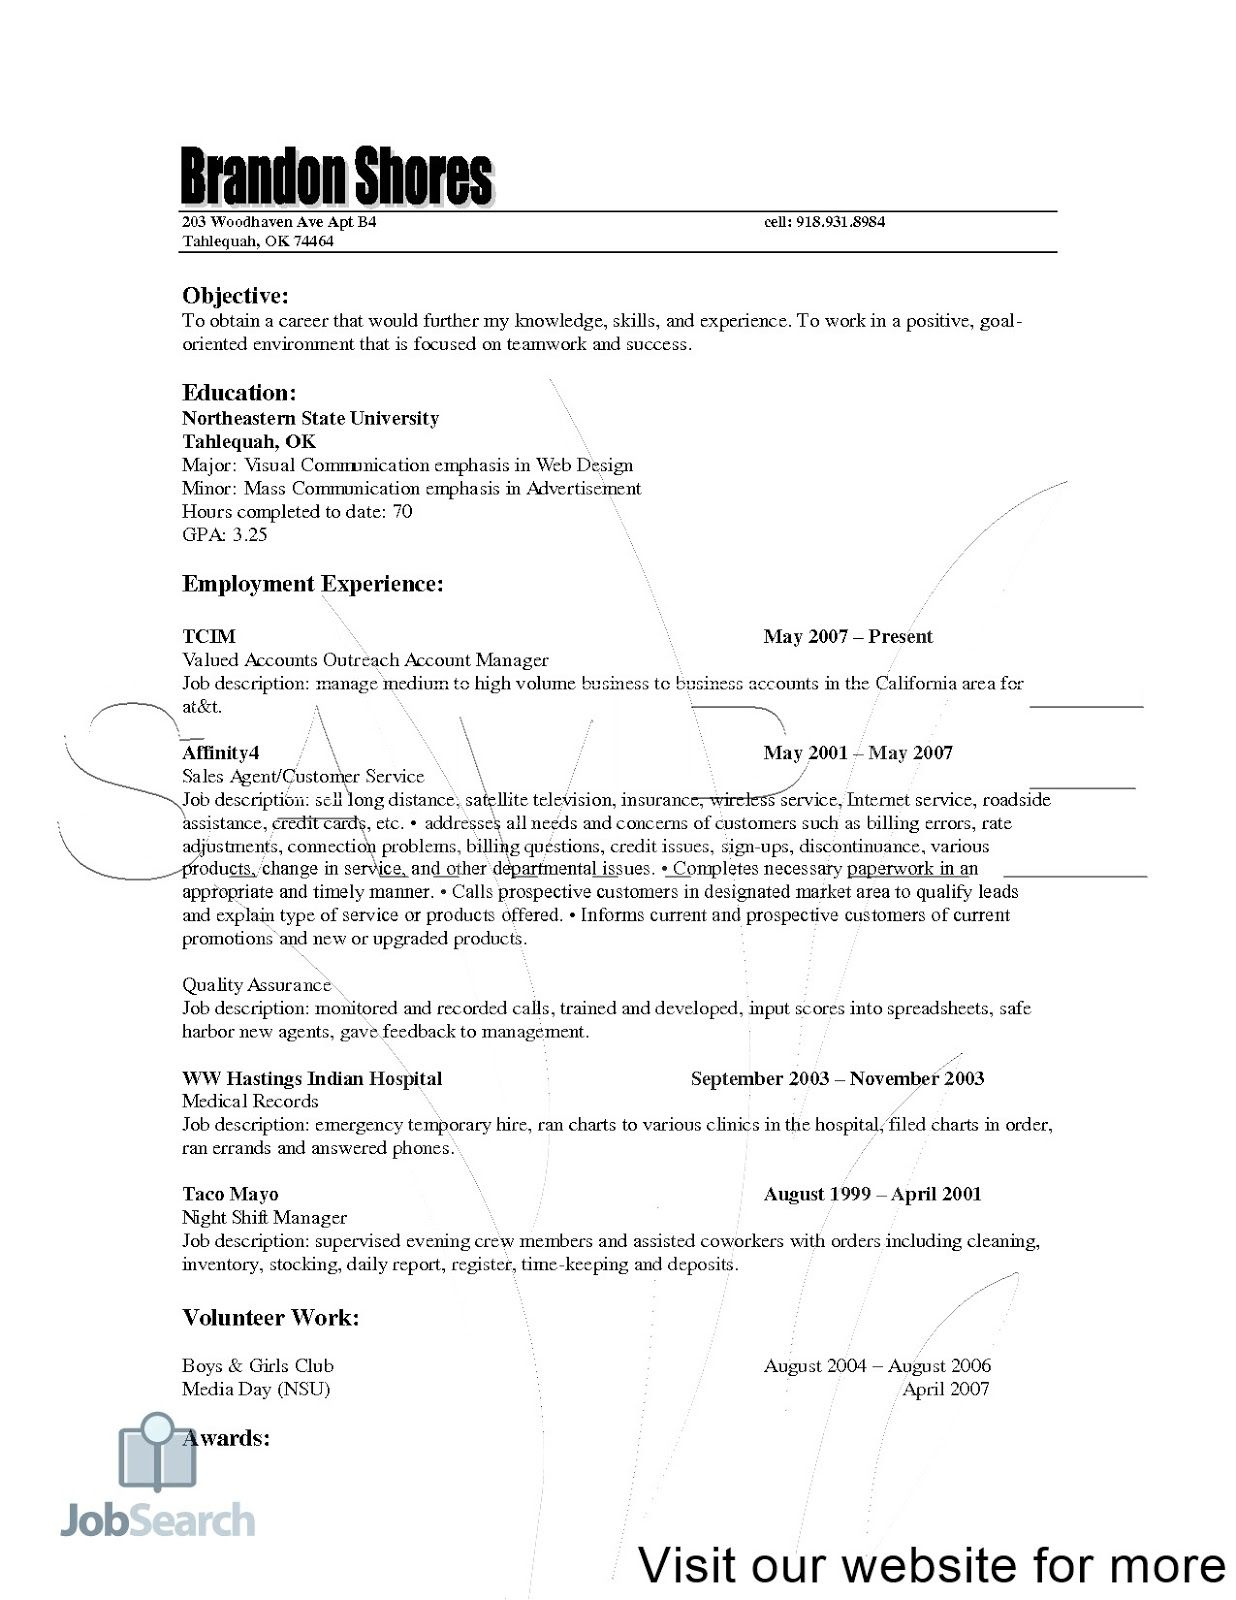 Insurance Representative Resume Samples 2020 Insurance